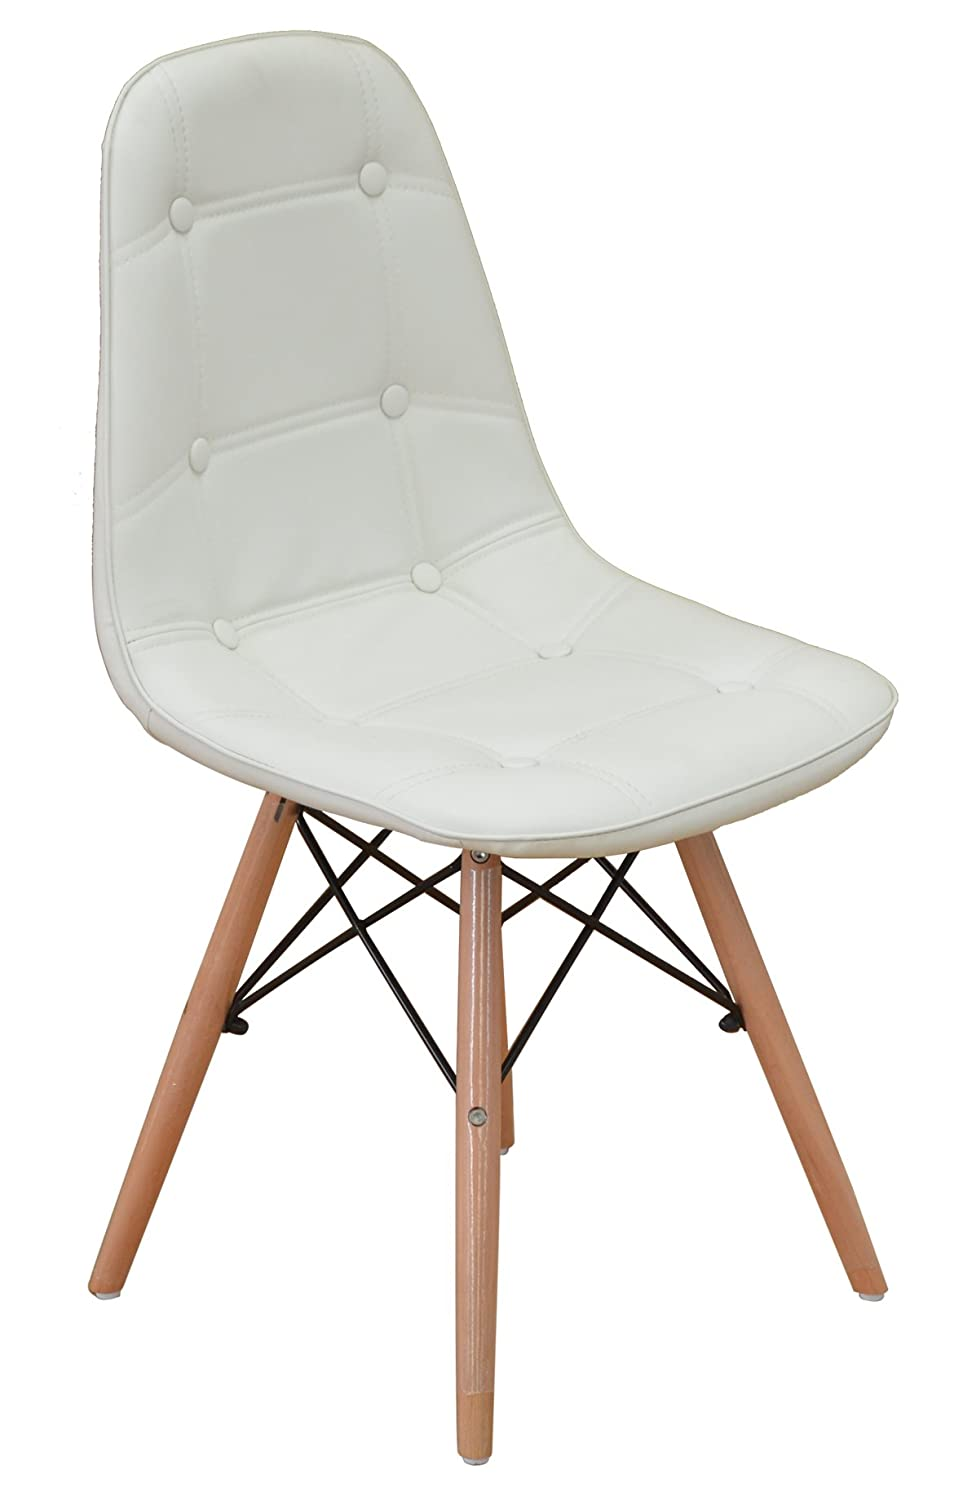 eames stuhl replika top eames dining chair replica lovely eames dining chair dcm charles eames. Black Bedroom Furniture Sets. Home Design Ideas